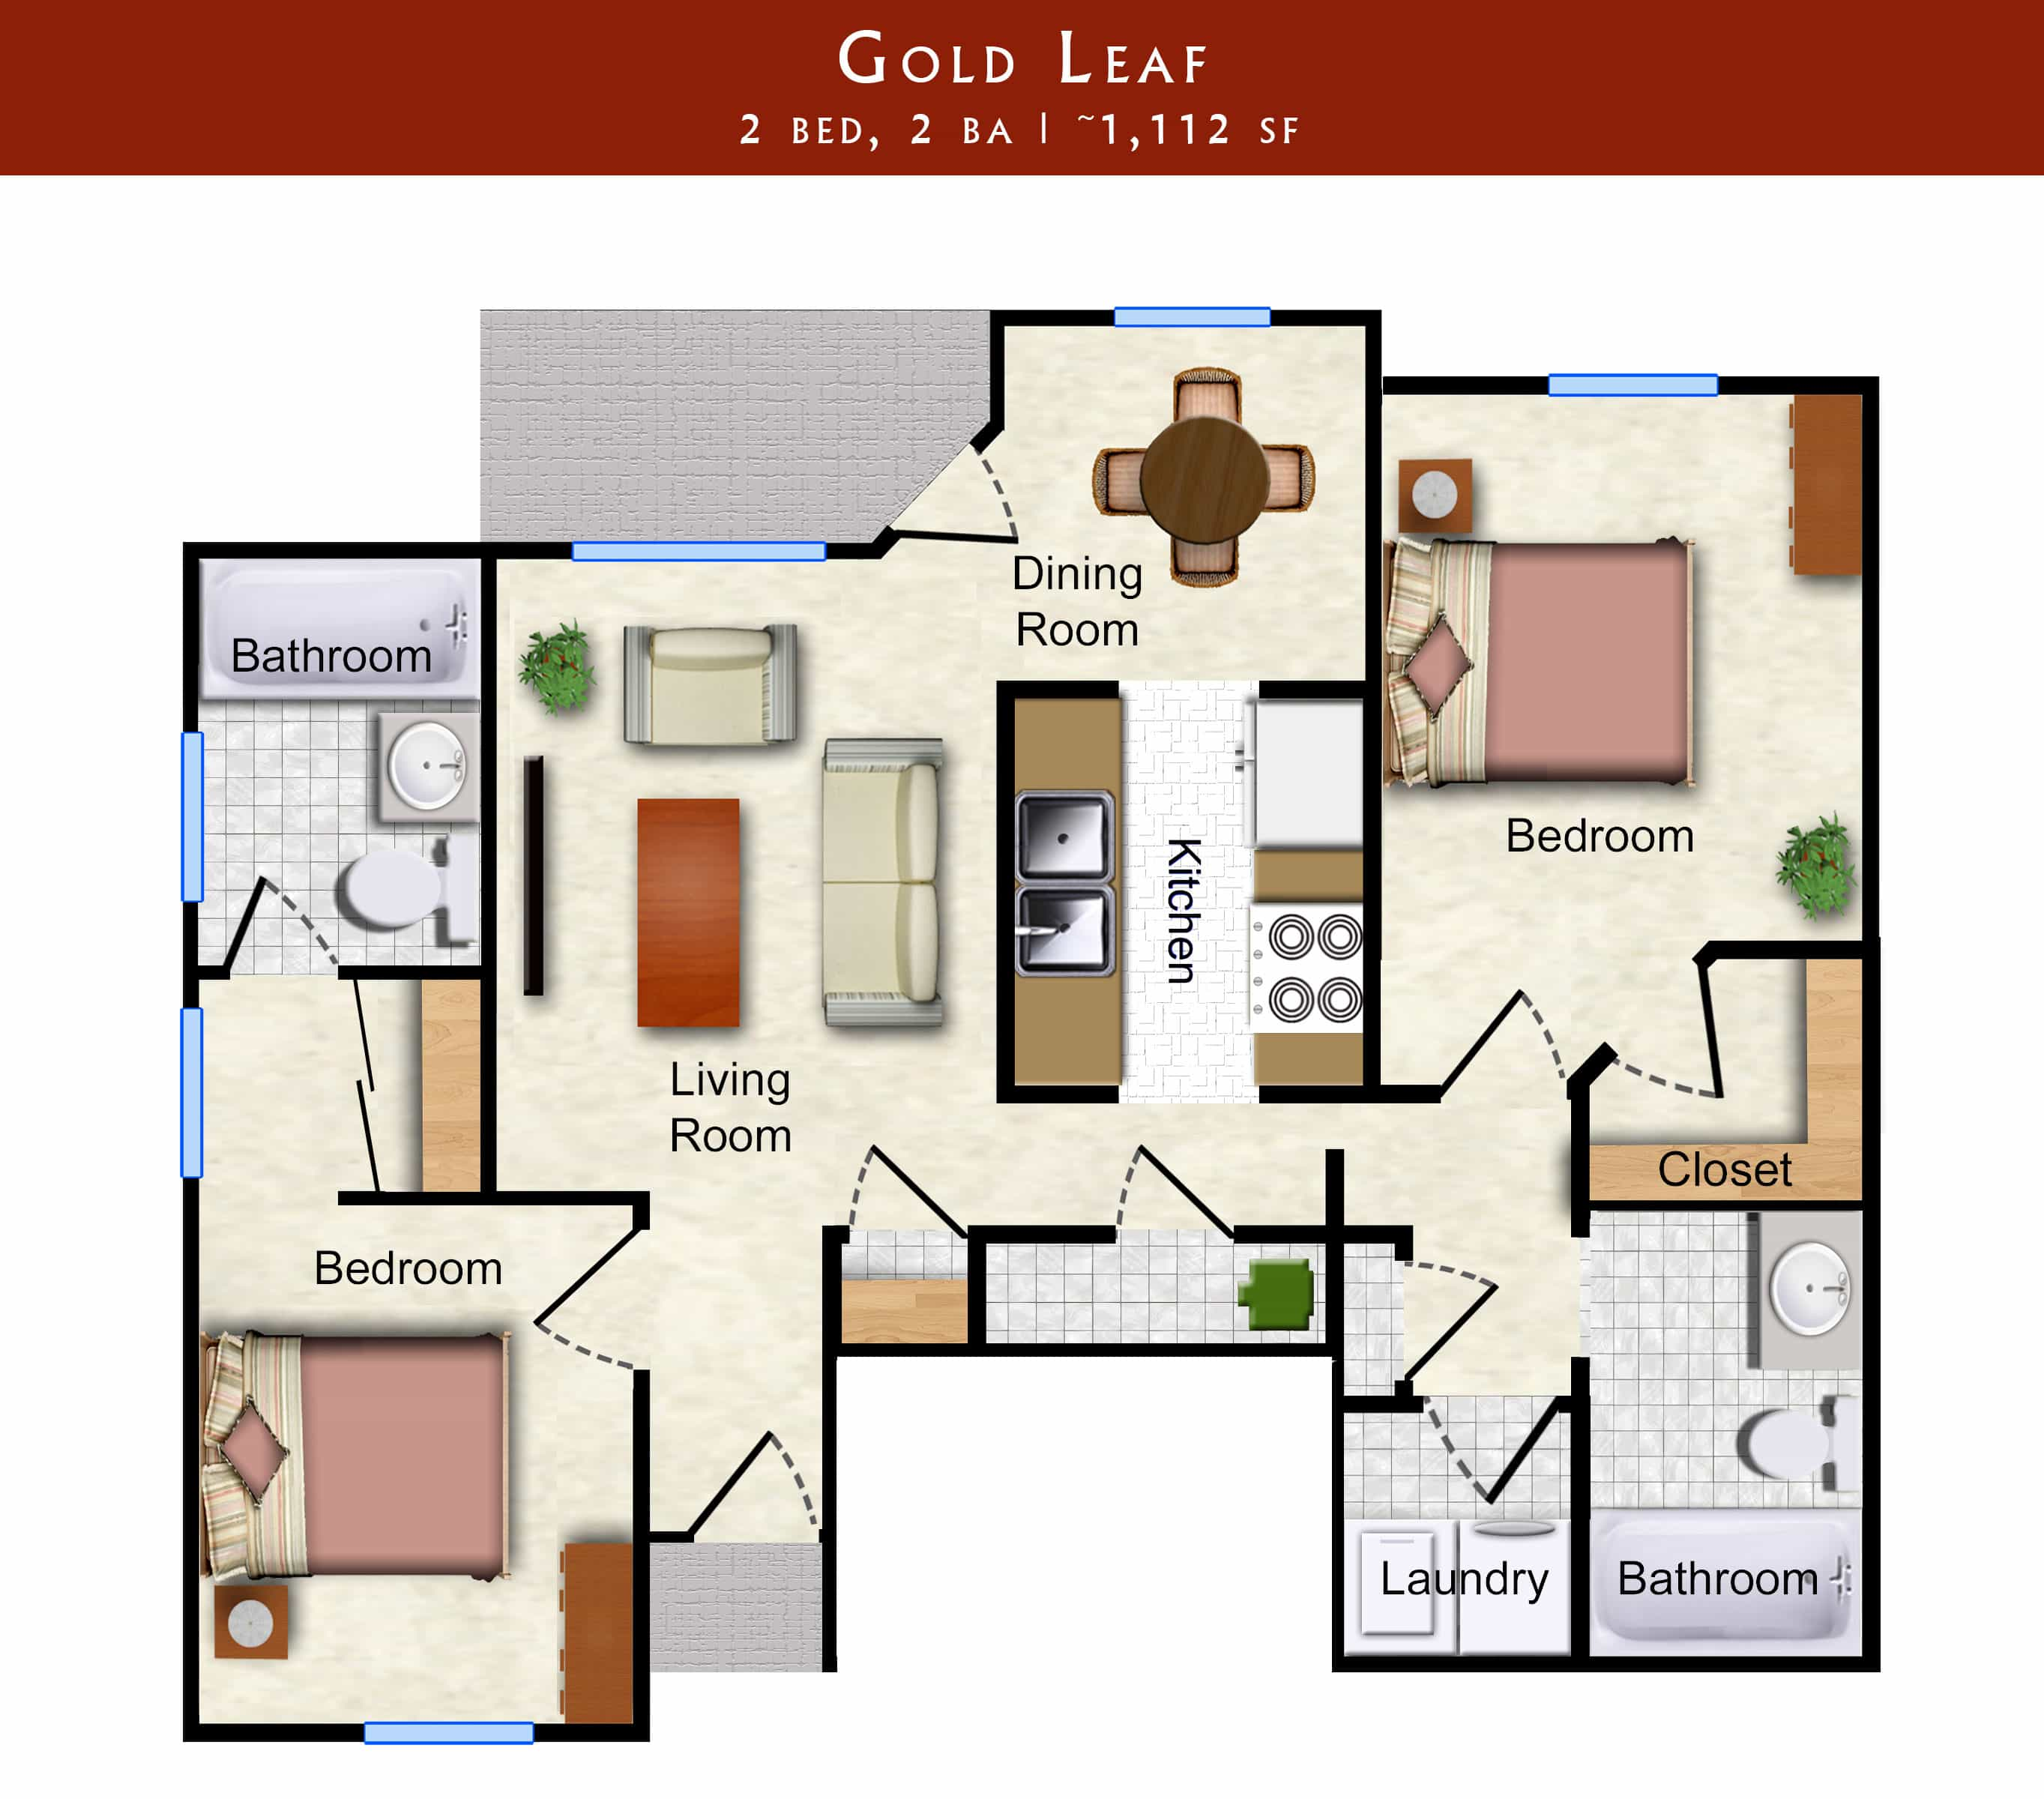 Gold Leaf: 2 bed, 2 bath 1,112 sq. ft. spacious floor plan of Lawrence apartment